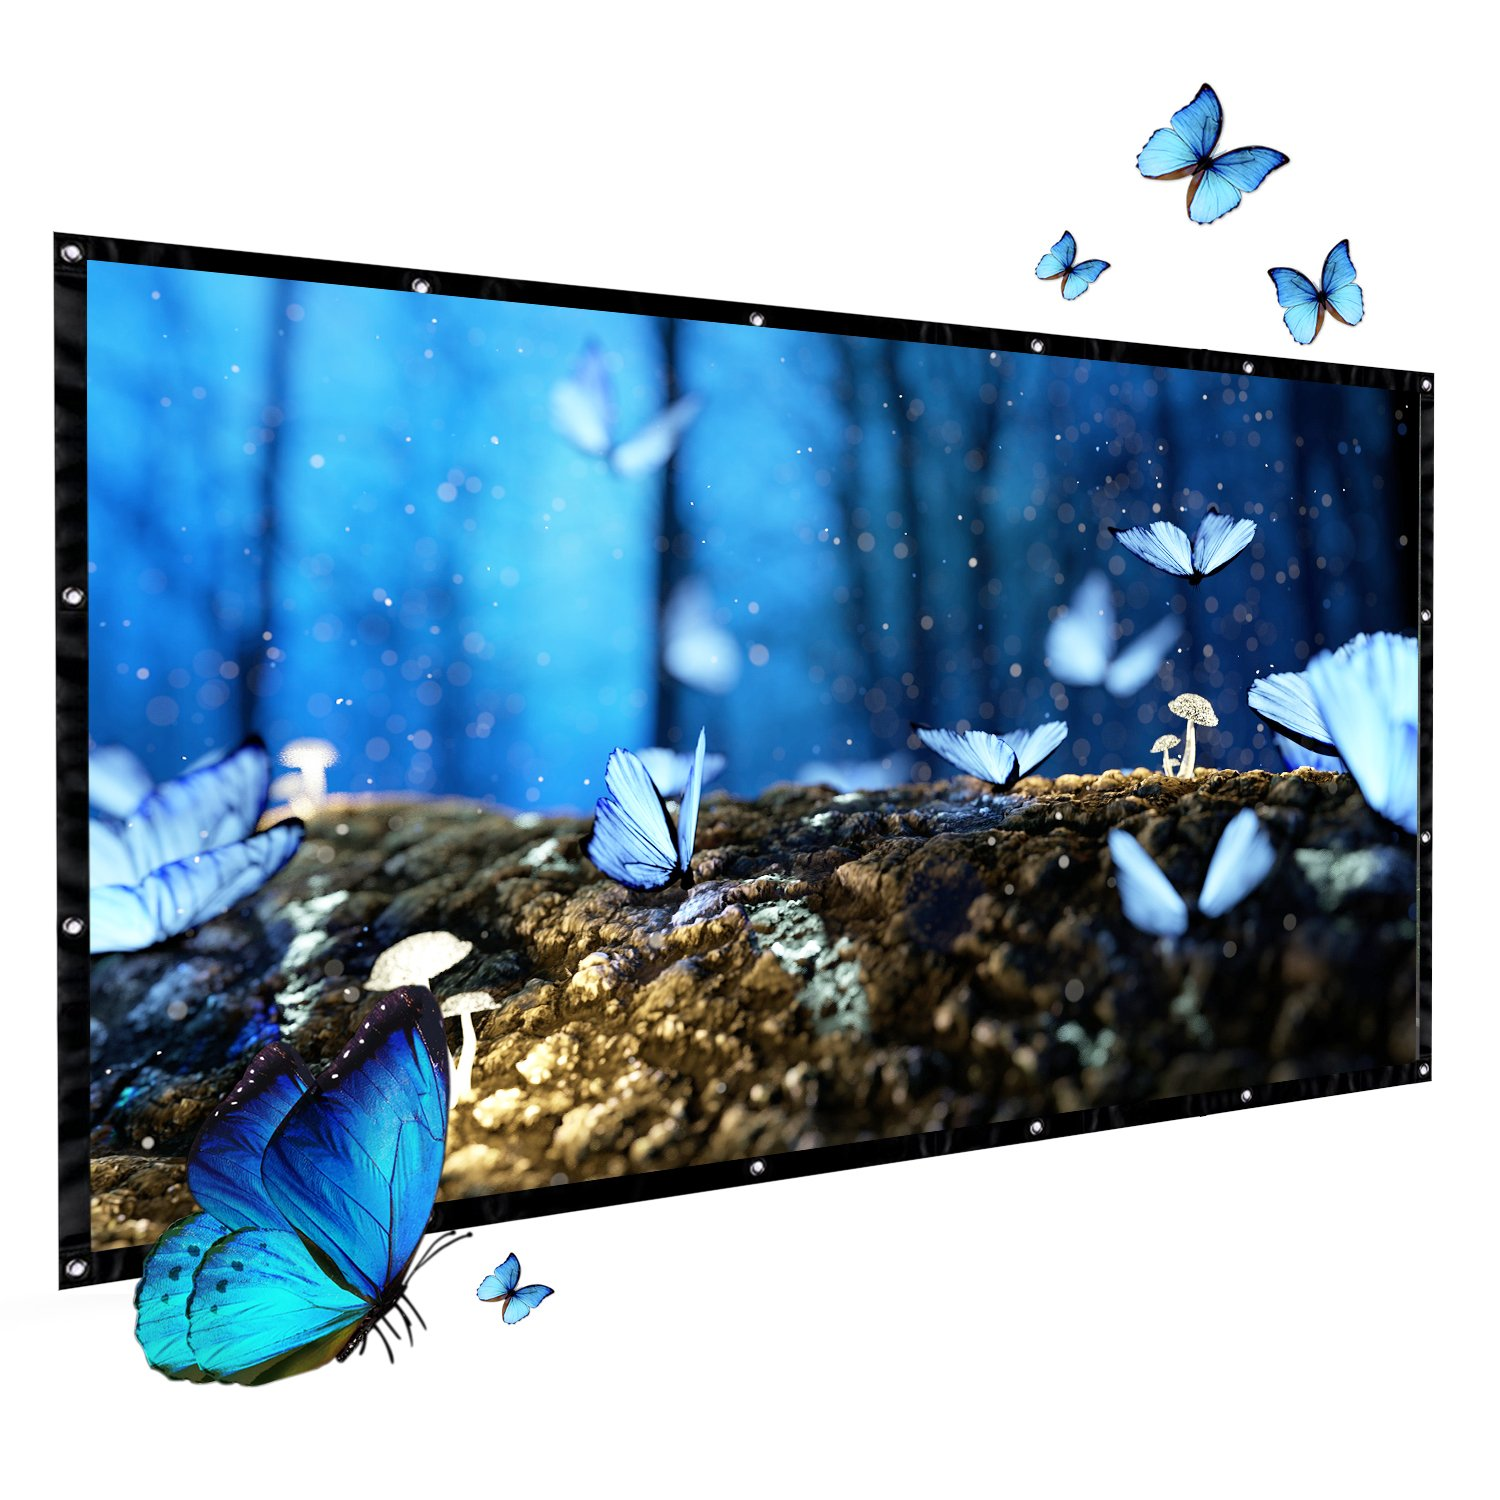 GuckZahl 100Inch Projection Screen 16:9 HD Foldable Anti-crease Portable,Lightweight,Projector Movies Screen Outdoor Indoor for Home Theater/Camping/Home Theater/Education/Office Presentation